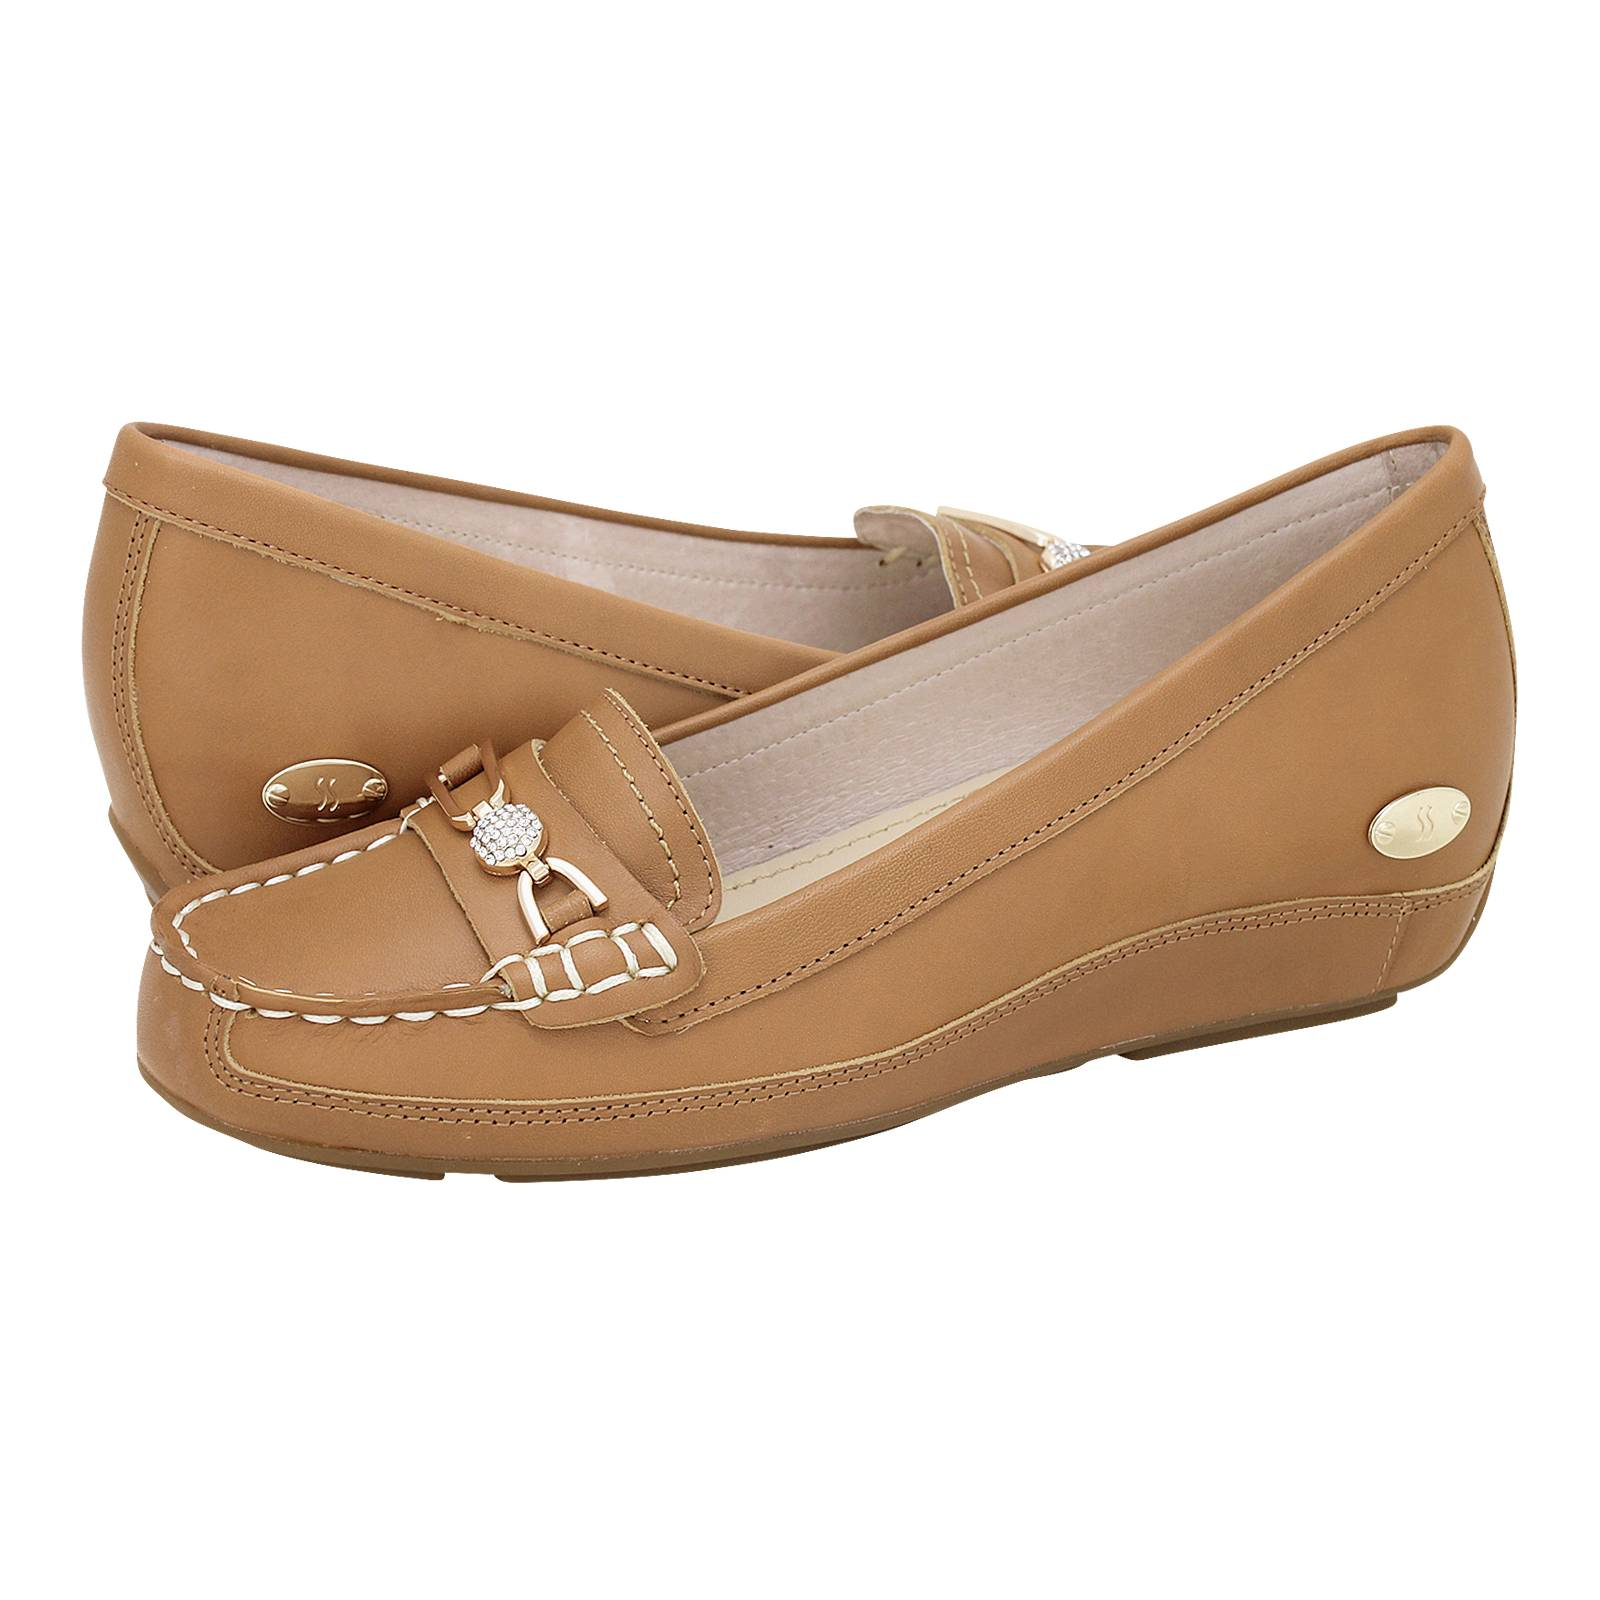 Mahlow - Esthissis Women s mocassins made of leather - Gianna ... 9710774f78e